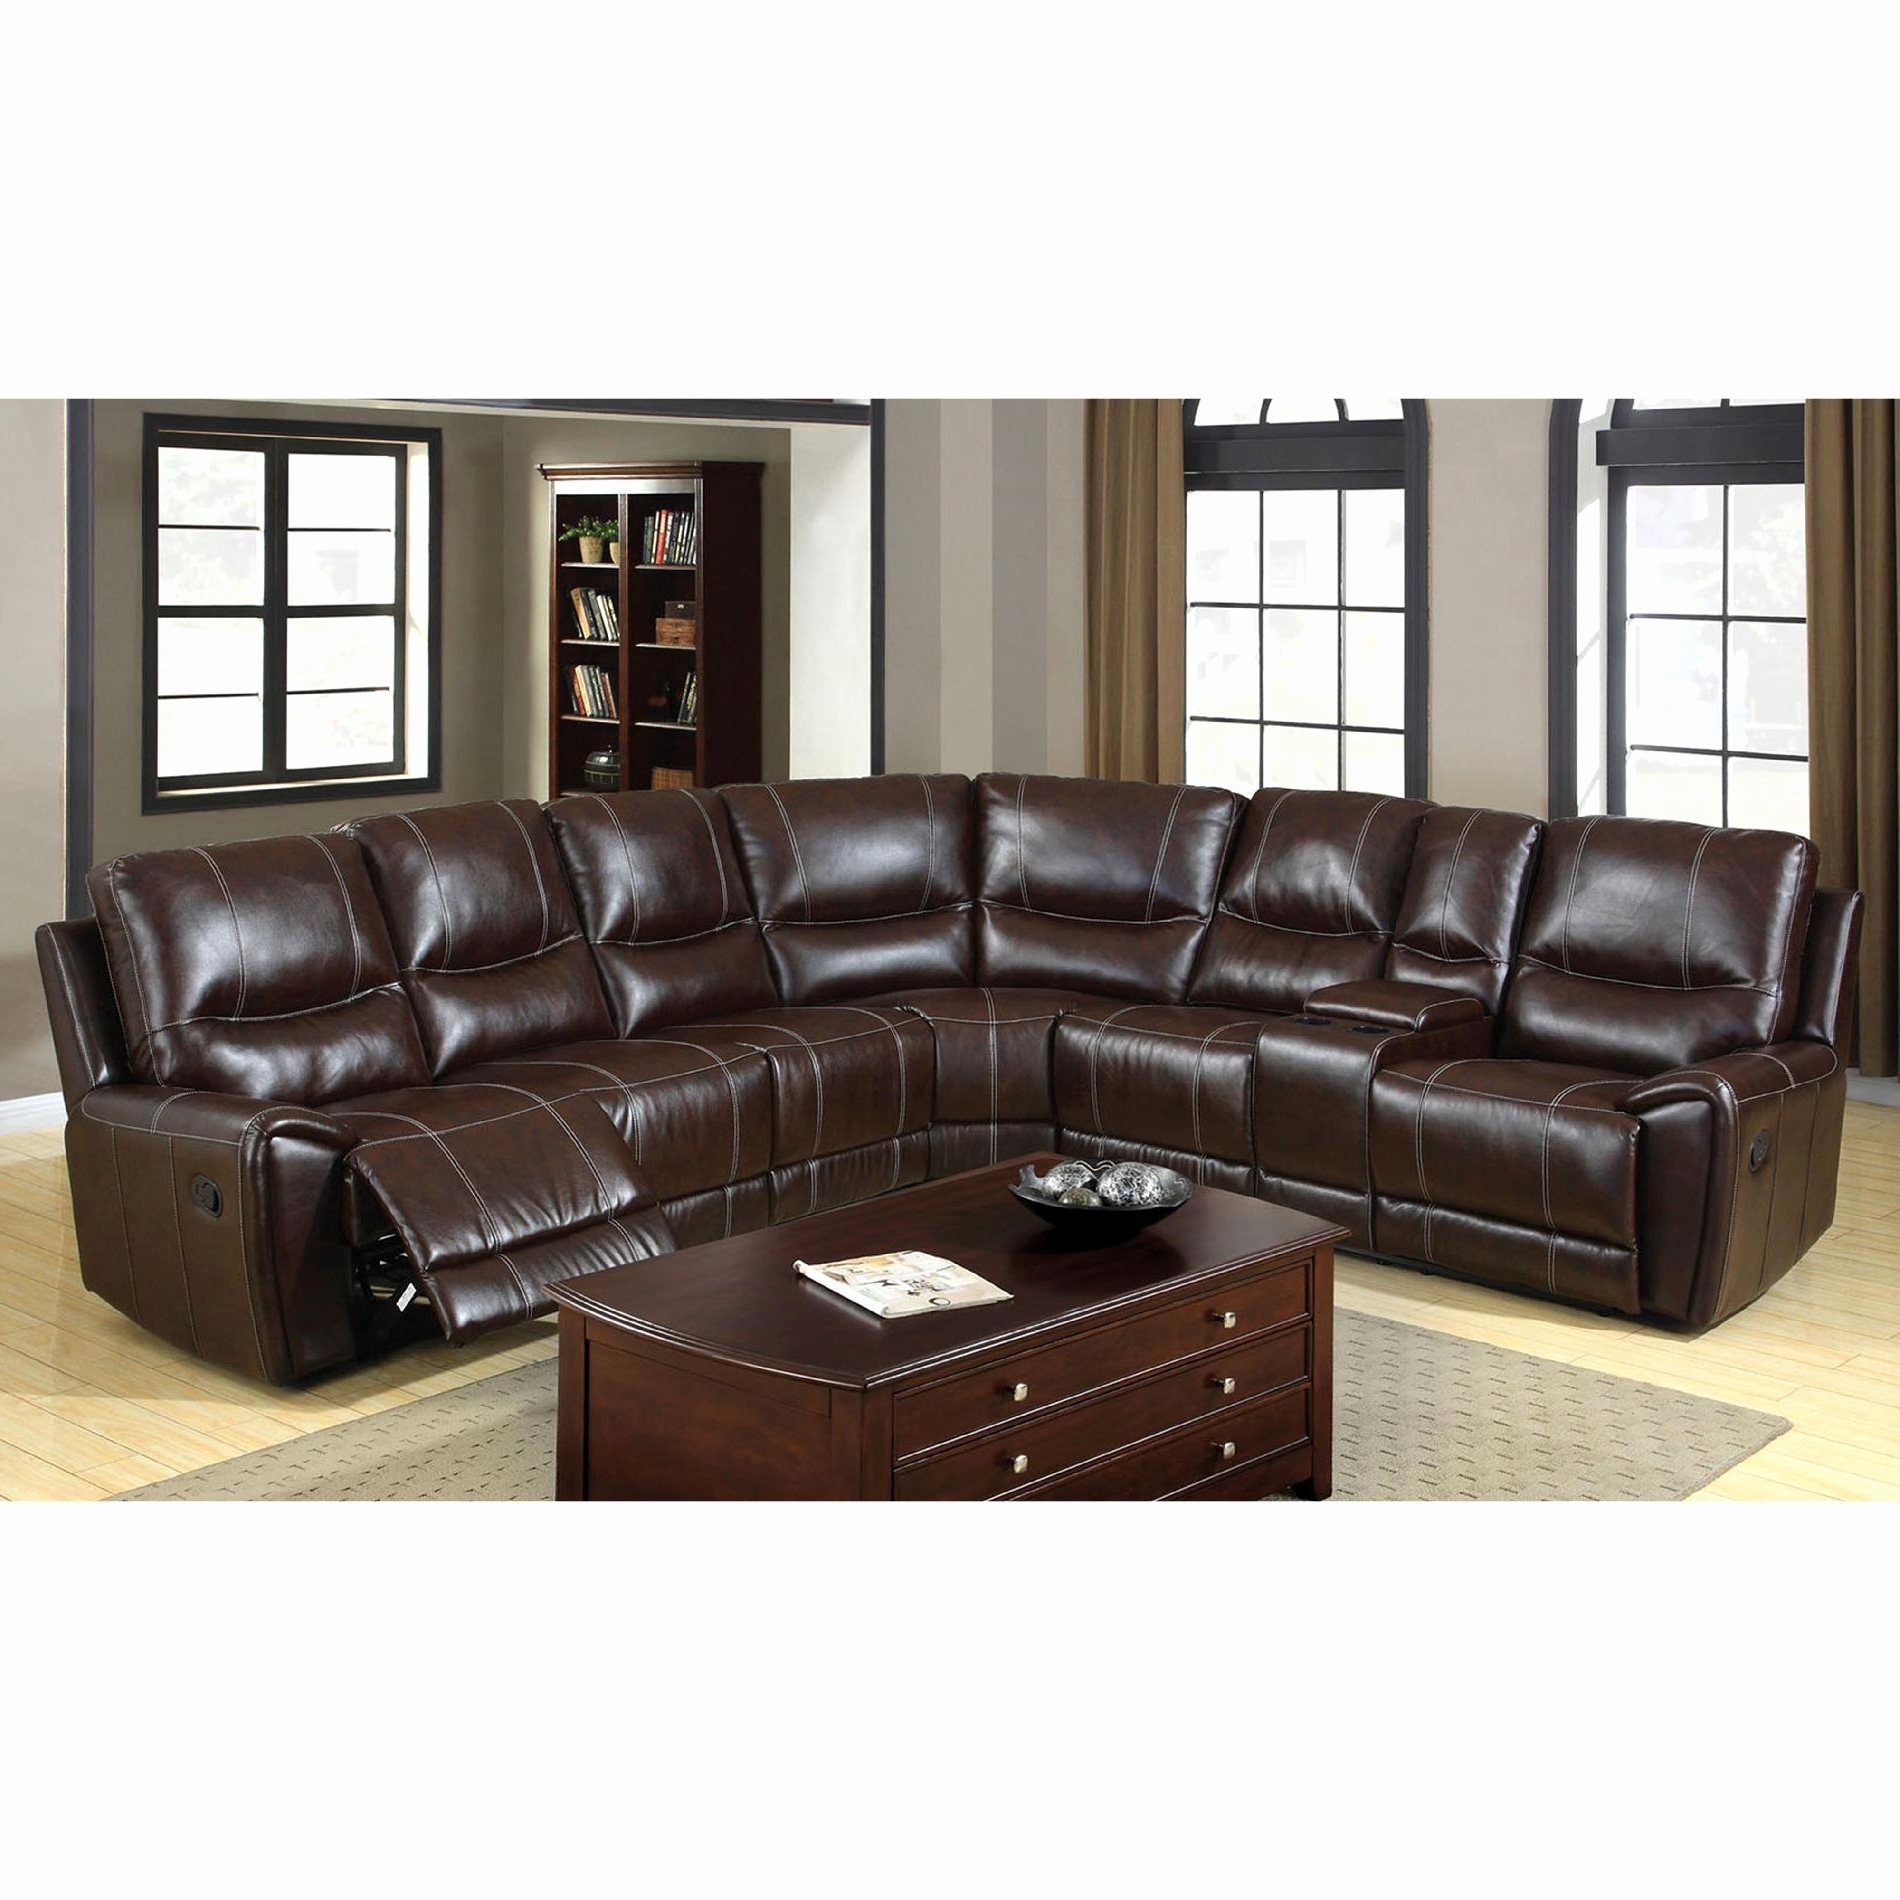 Beau Well Liked Modular Sectional Sofa With Ottoman Good Sofa Clearance Sectional  Inside Sectional Sofas Art Van